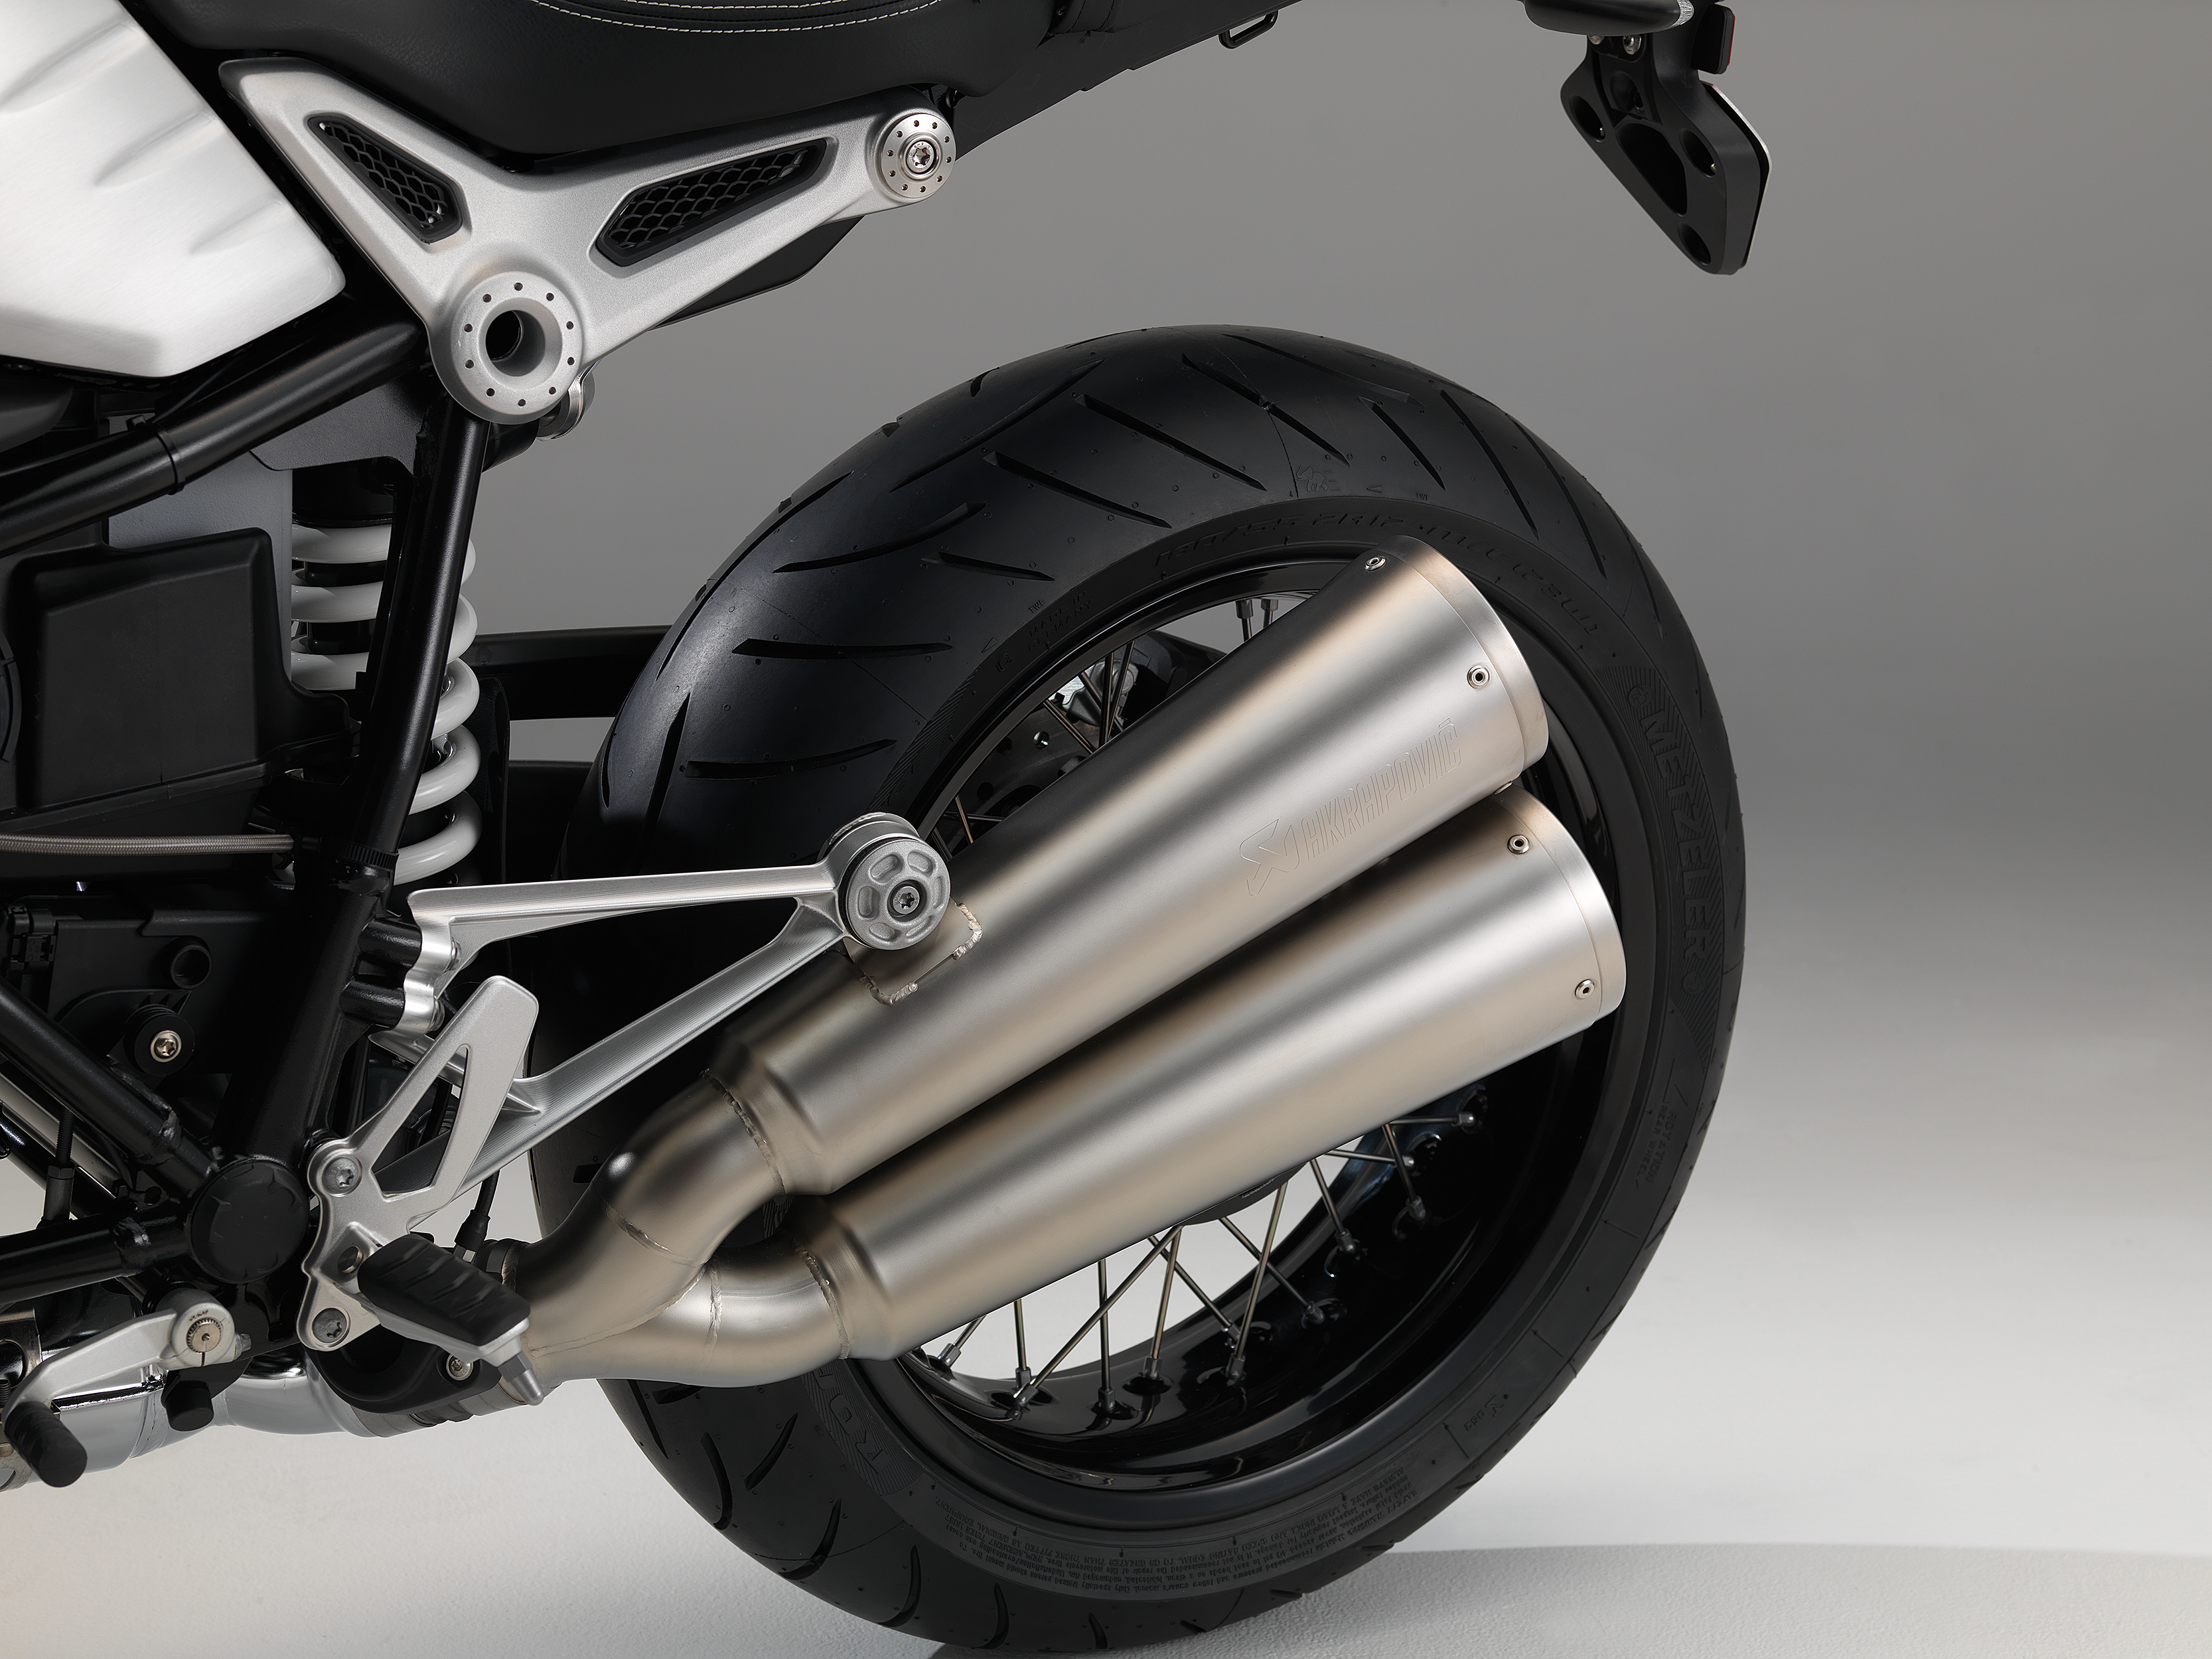 BMW NineT specs and pictures